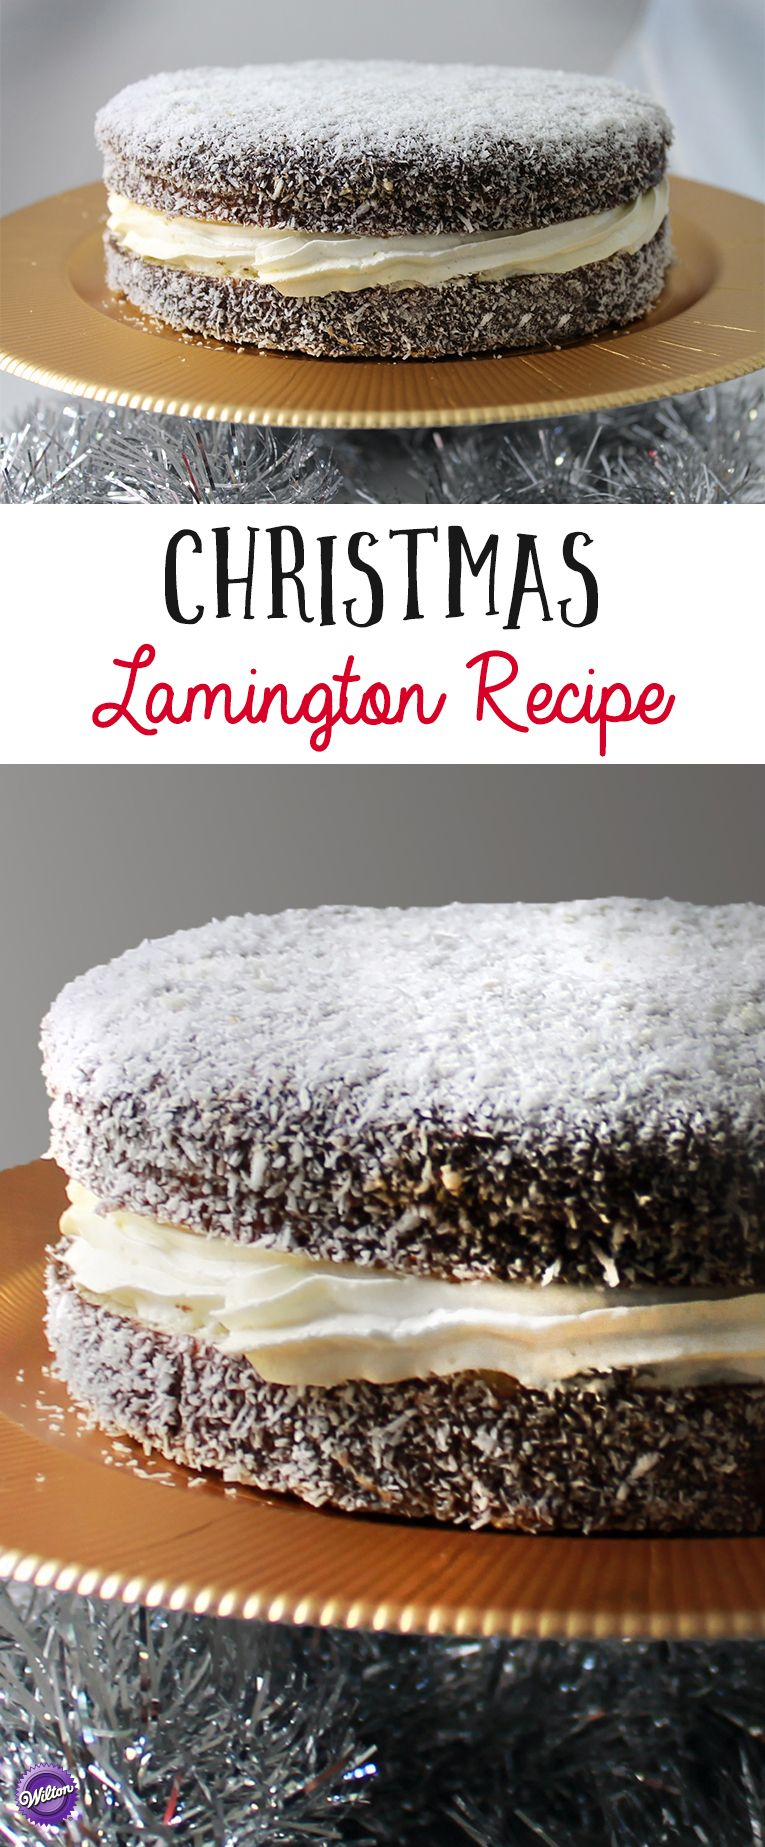 Christmas around the world australia pinterest cake recipes the lamington a popular australian dessert gets a christmas makeover get the recipe for this delicious cake on our blog forumfinder Image collections